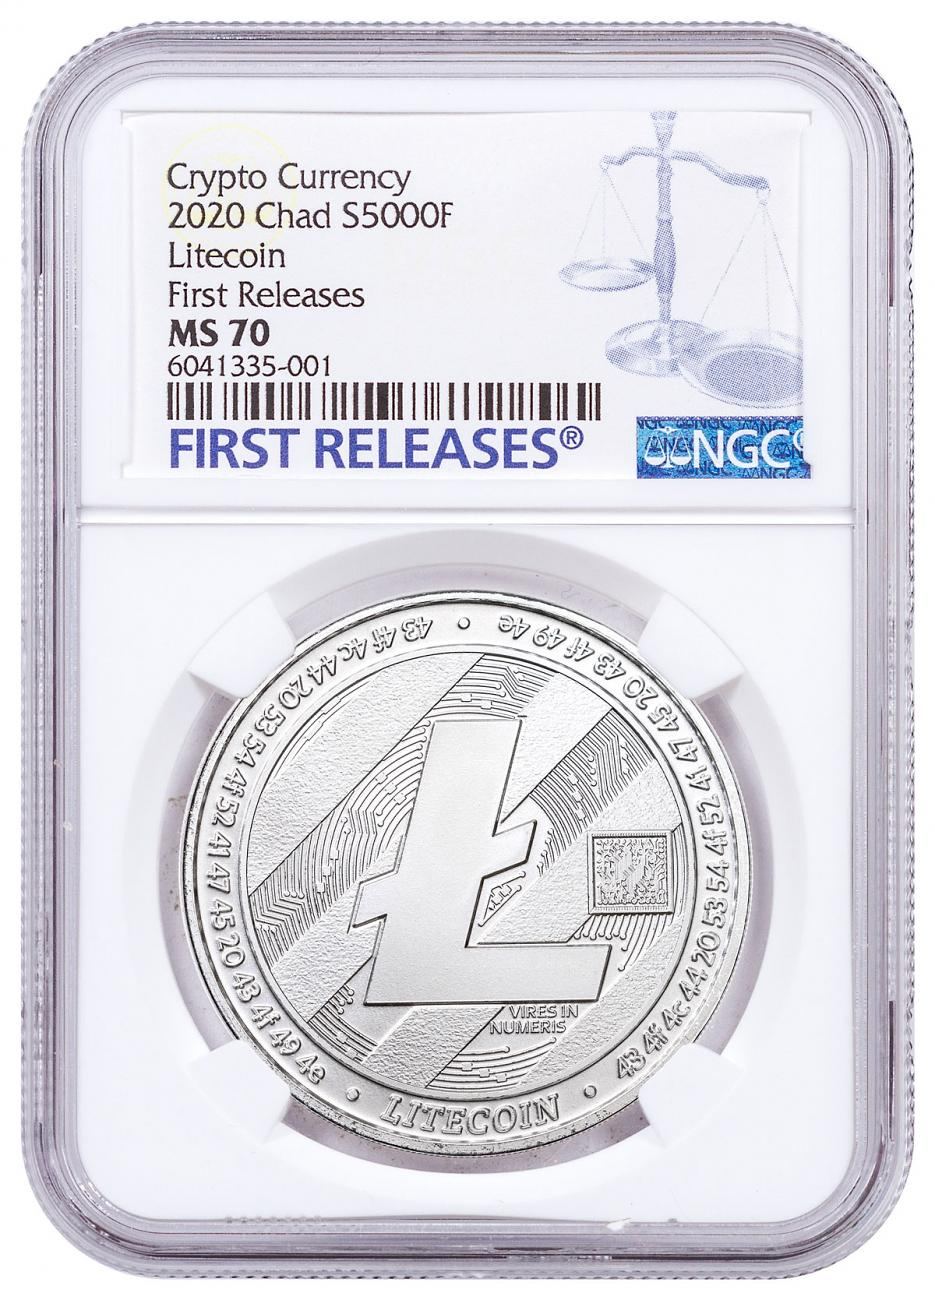 2020 Republic of Chad Fr.5,000 CFA 1 oz Silver LiteCoin Crypto Currency Coin NGC MS70 FR